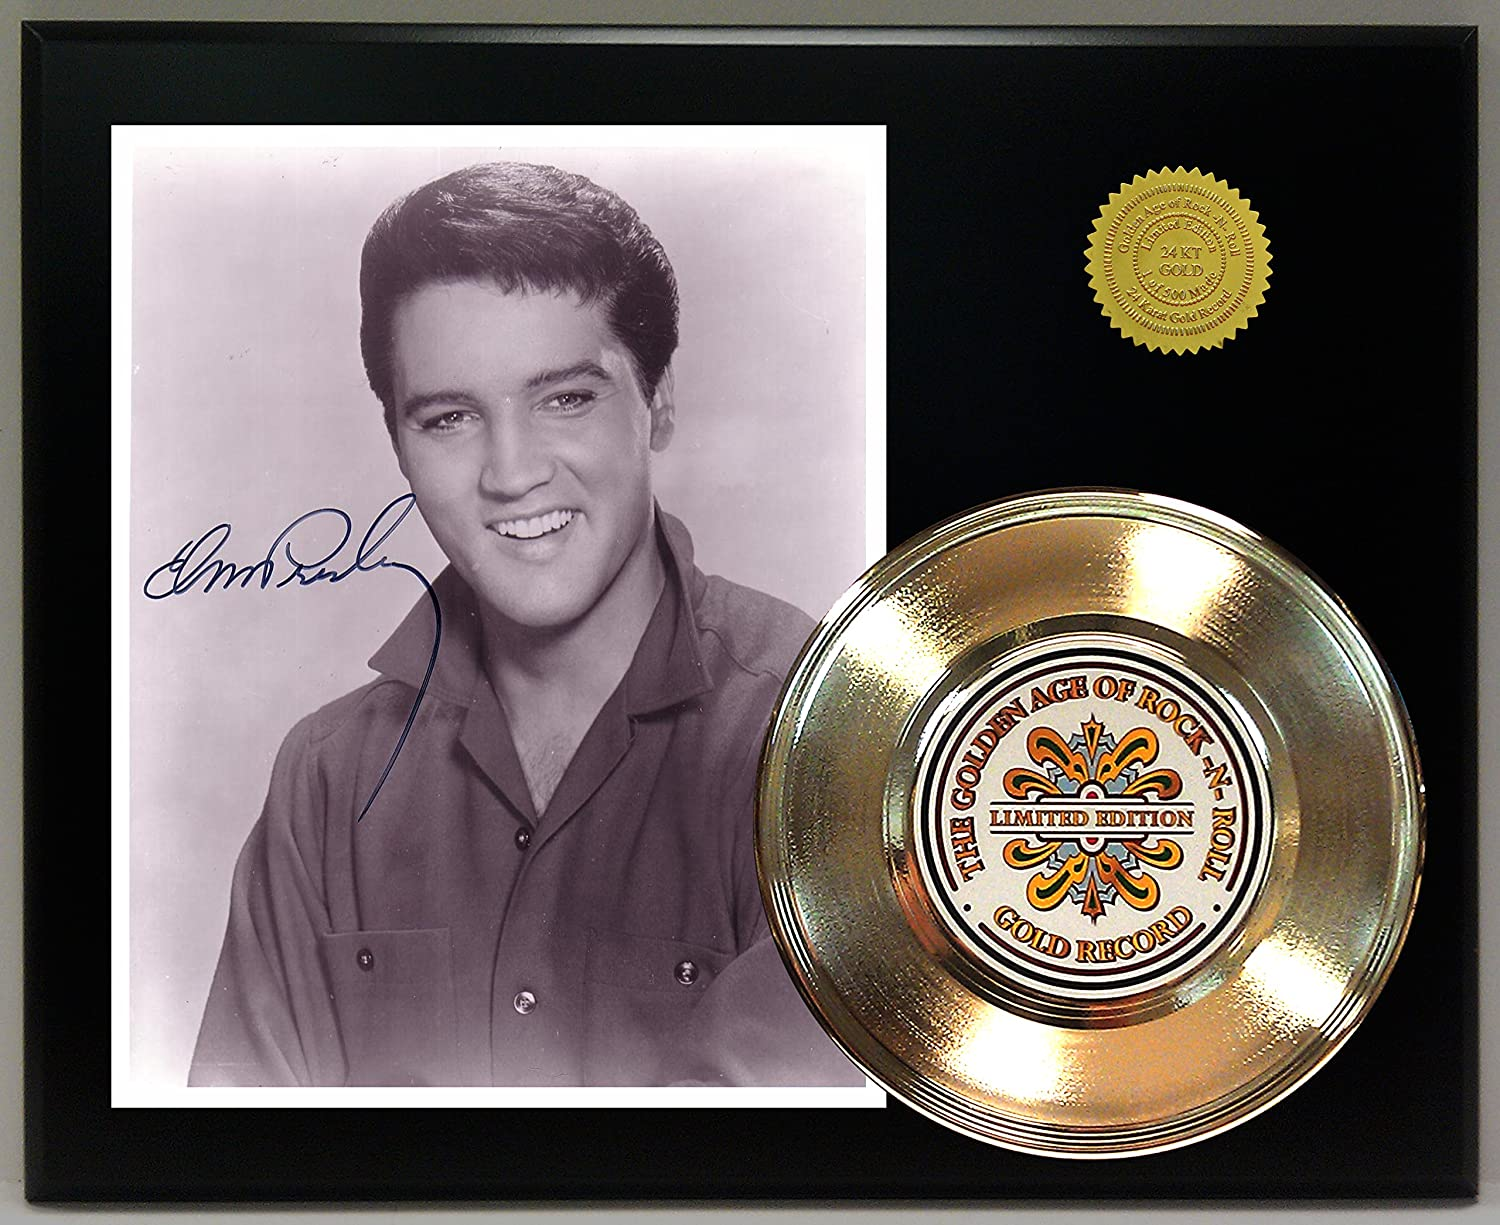 Elvis Presley Gold Record Reproduction Signature Series LTD Edition Display